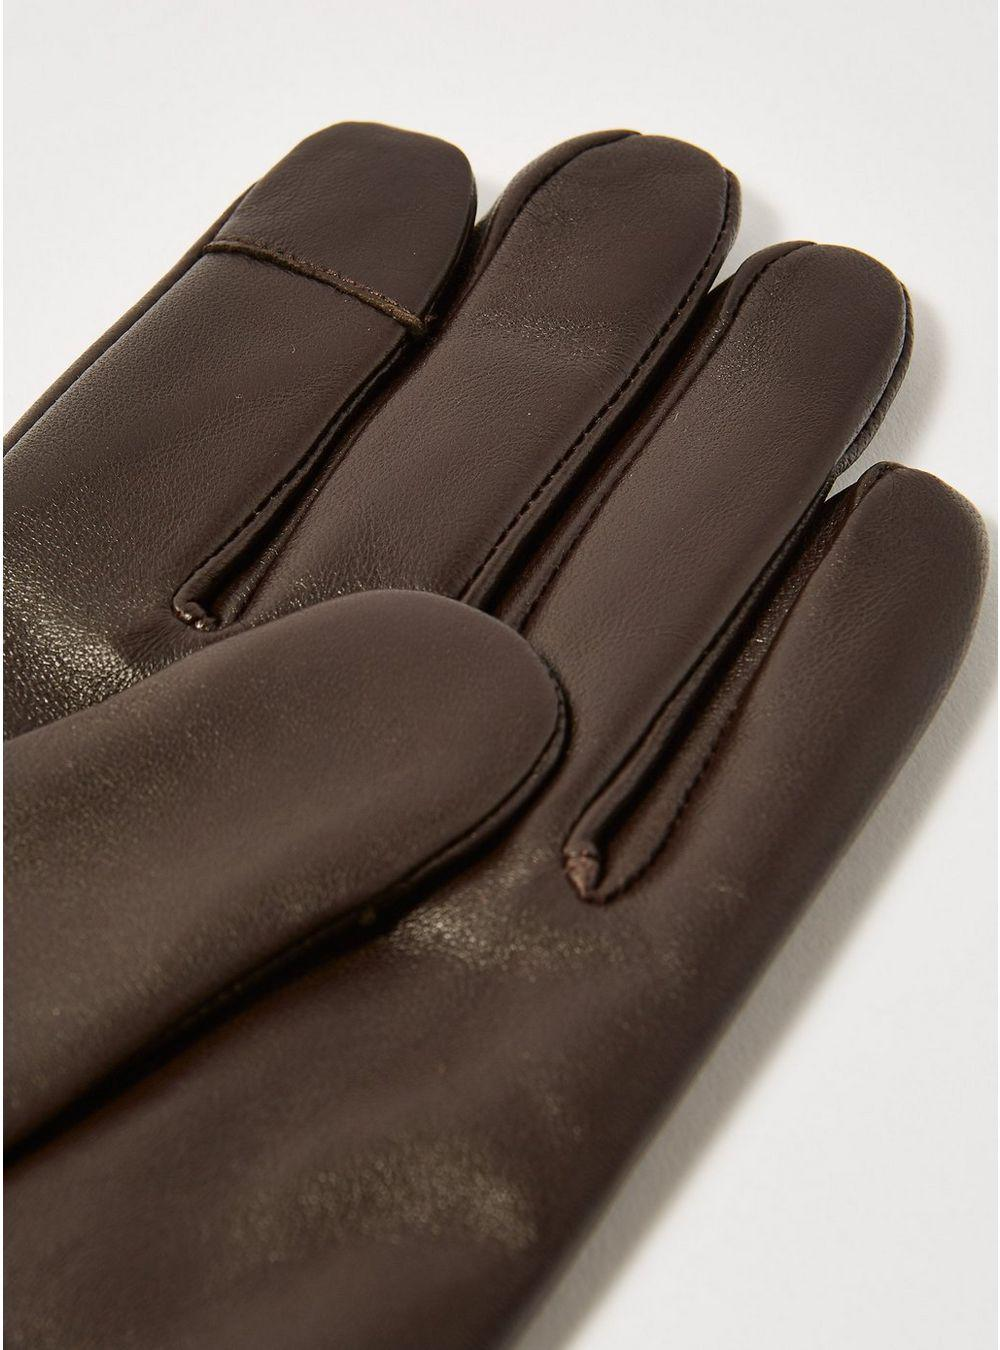 fbe54e35d4a Topman Brown Leather Gloves And Box in Brown for Men - Lyst